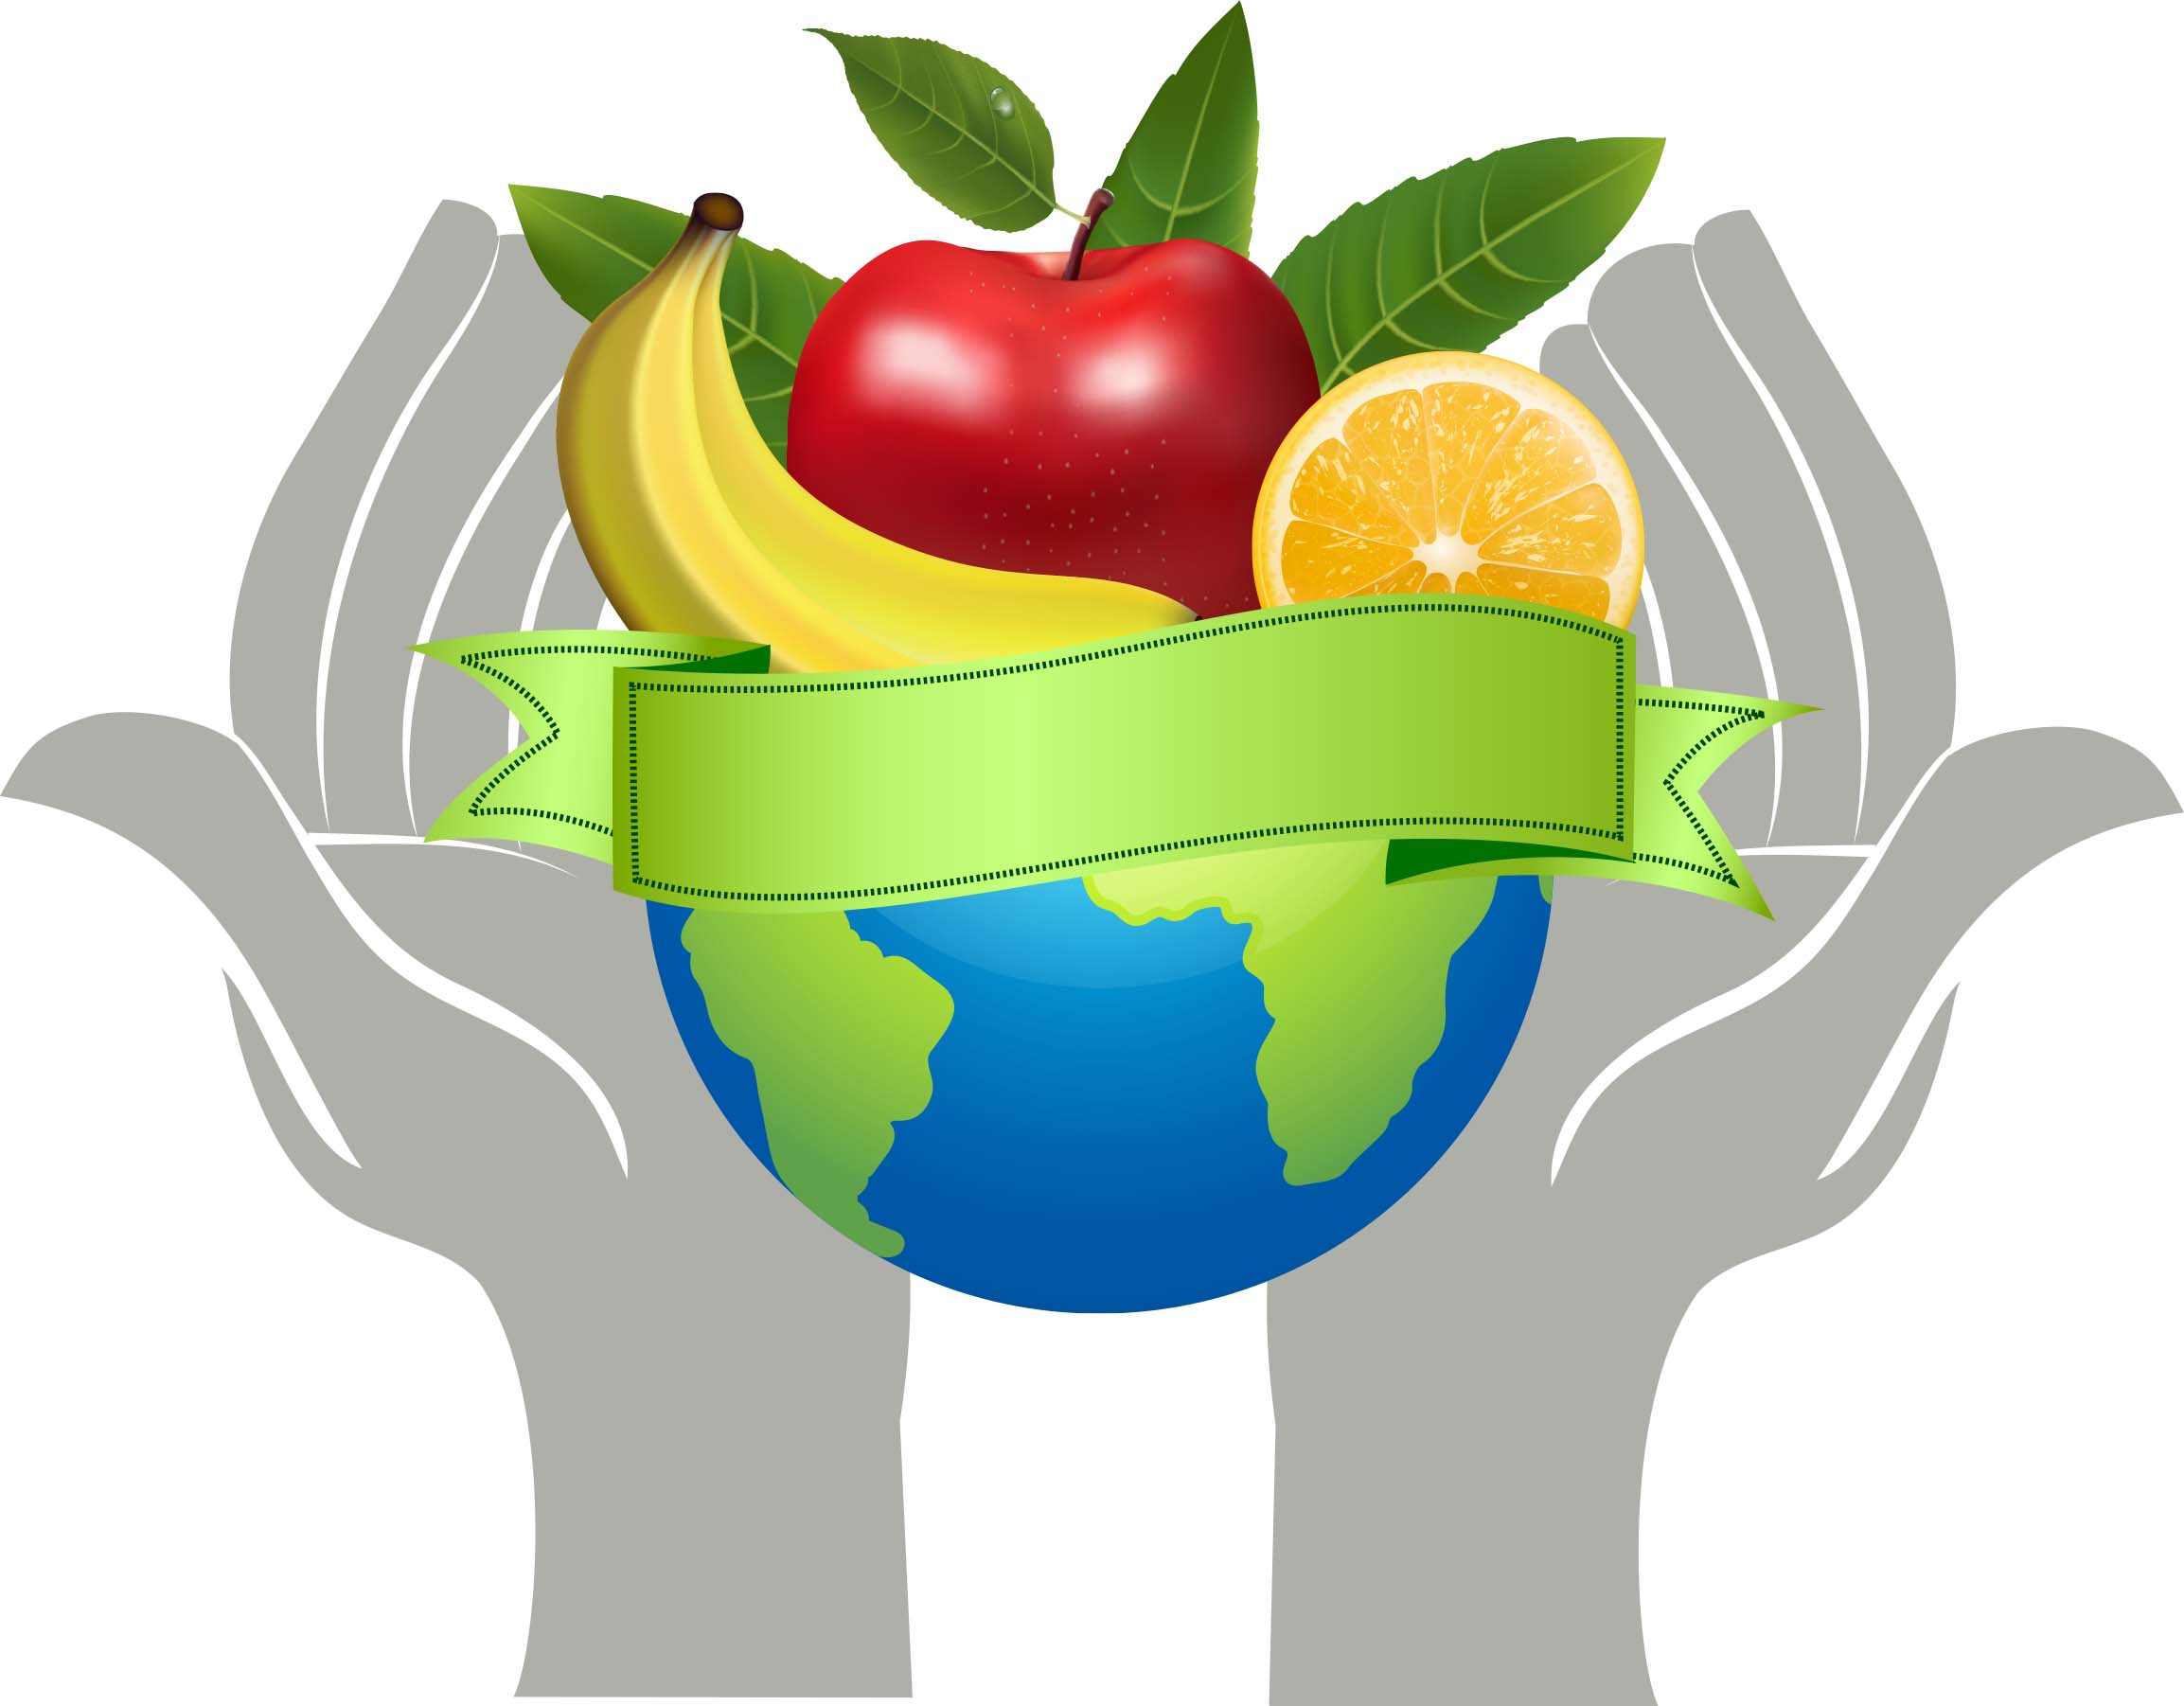 Feed the world clipart clipart royalty free download World Food Prize pays tribute to biofortification - AgriOrbit clipart royalty free download